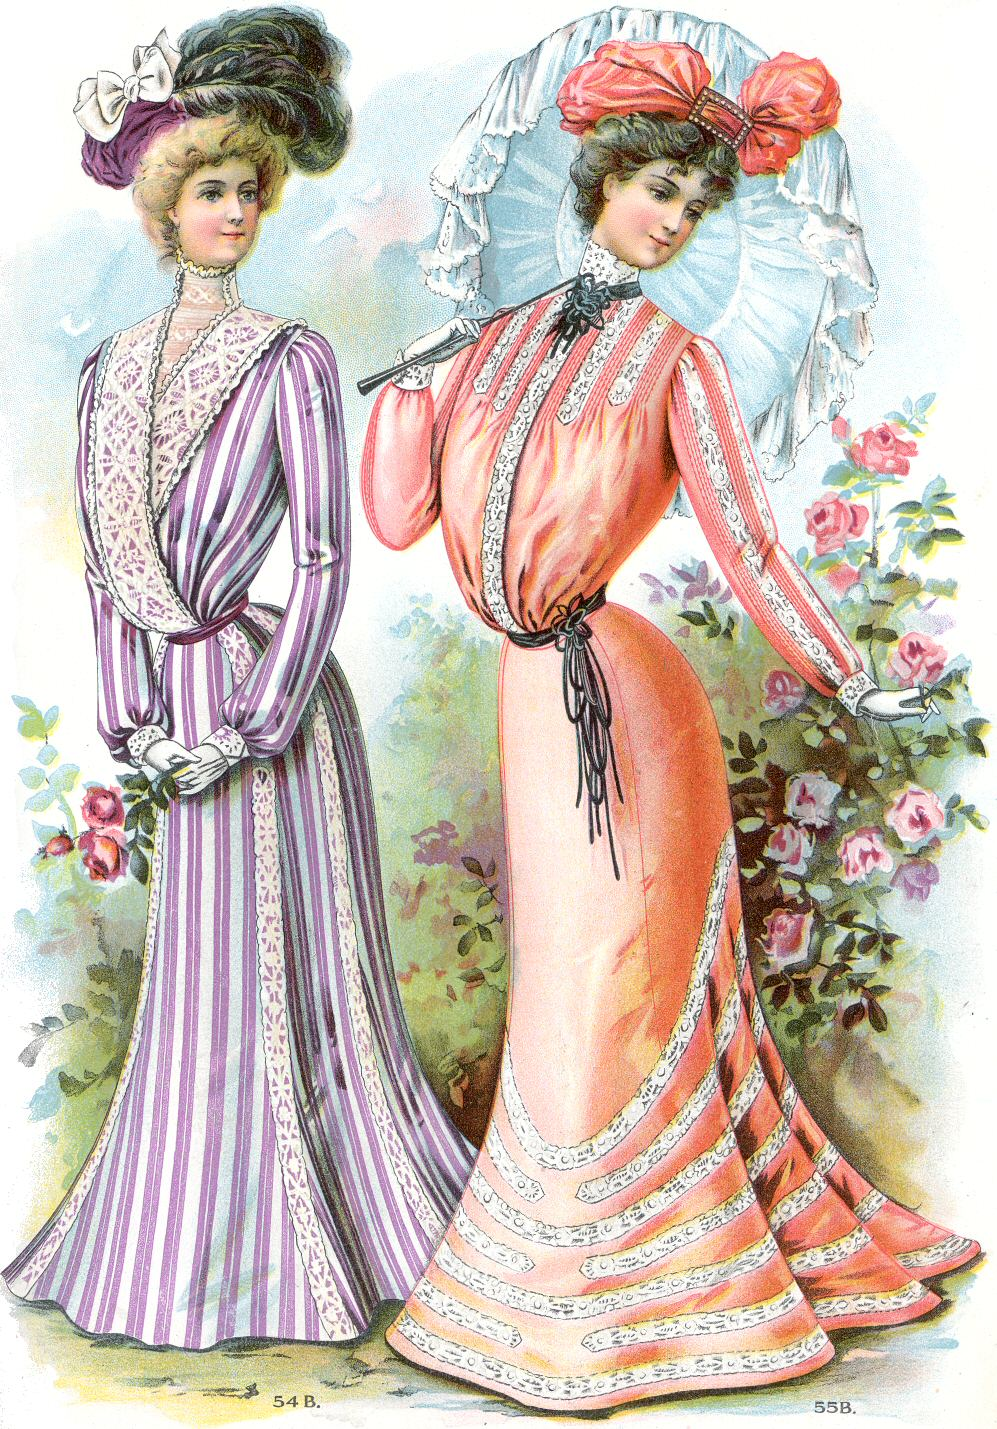 20th century fashion history 1900 - 1910 | The Fashion Folks